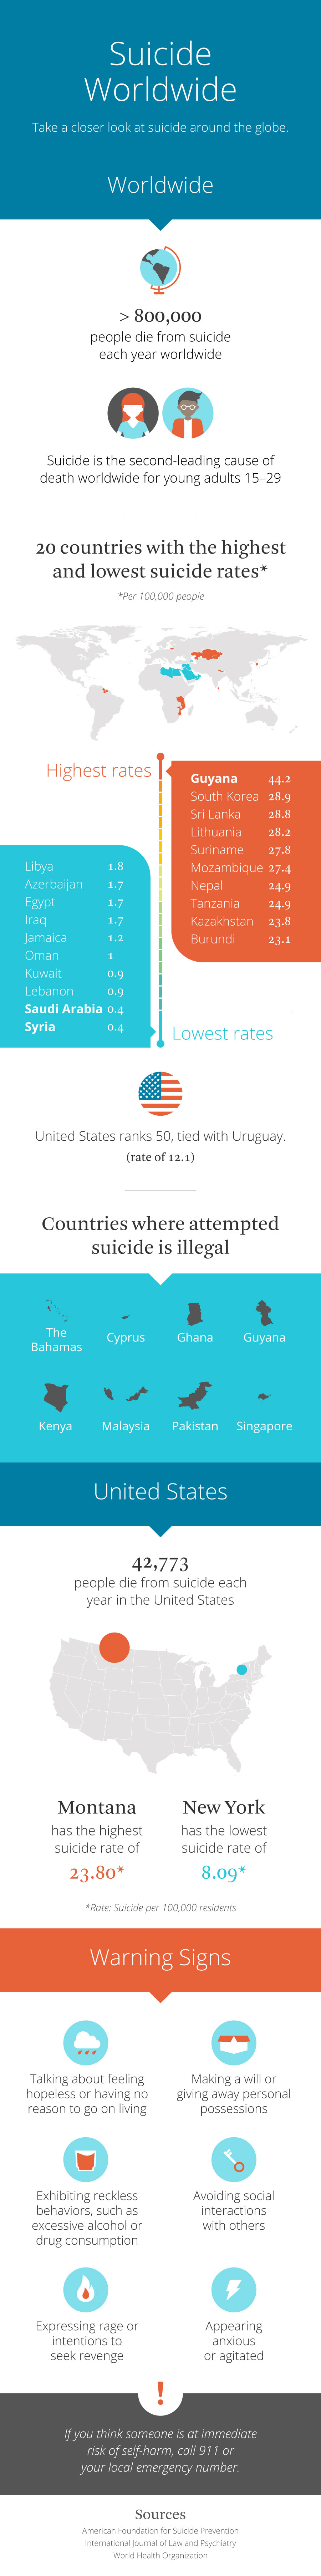 suicide facts infographic